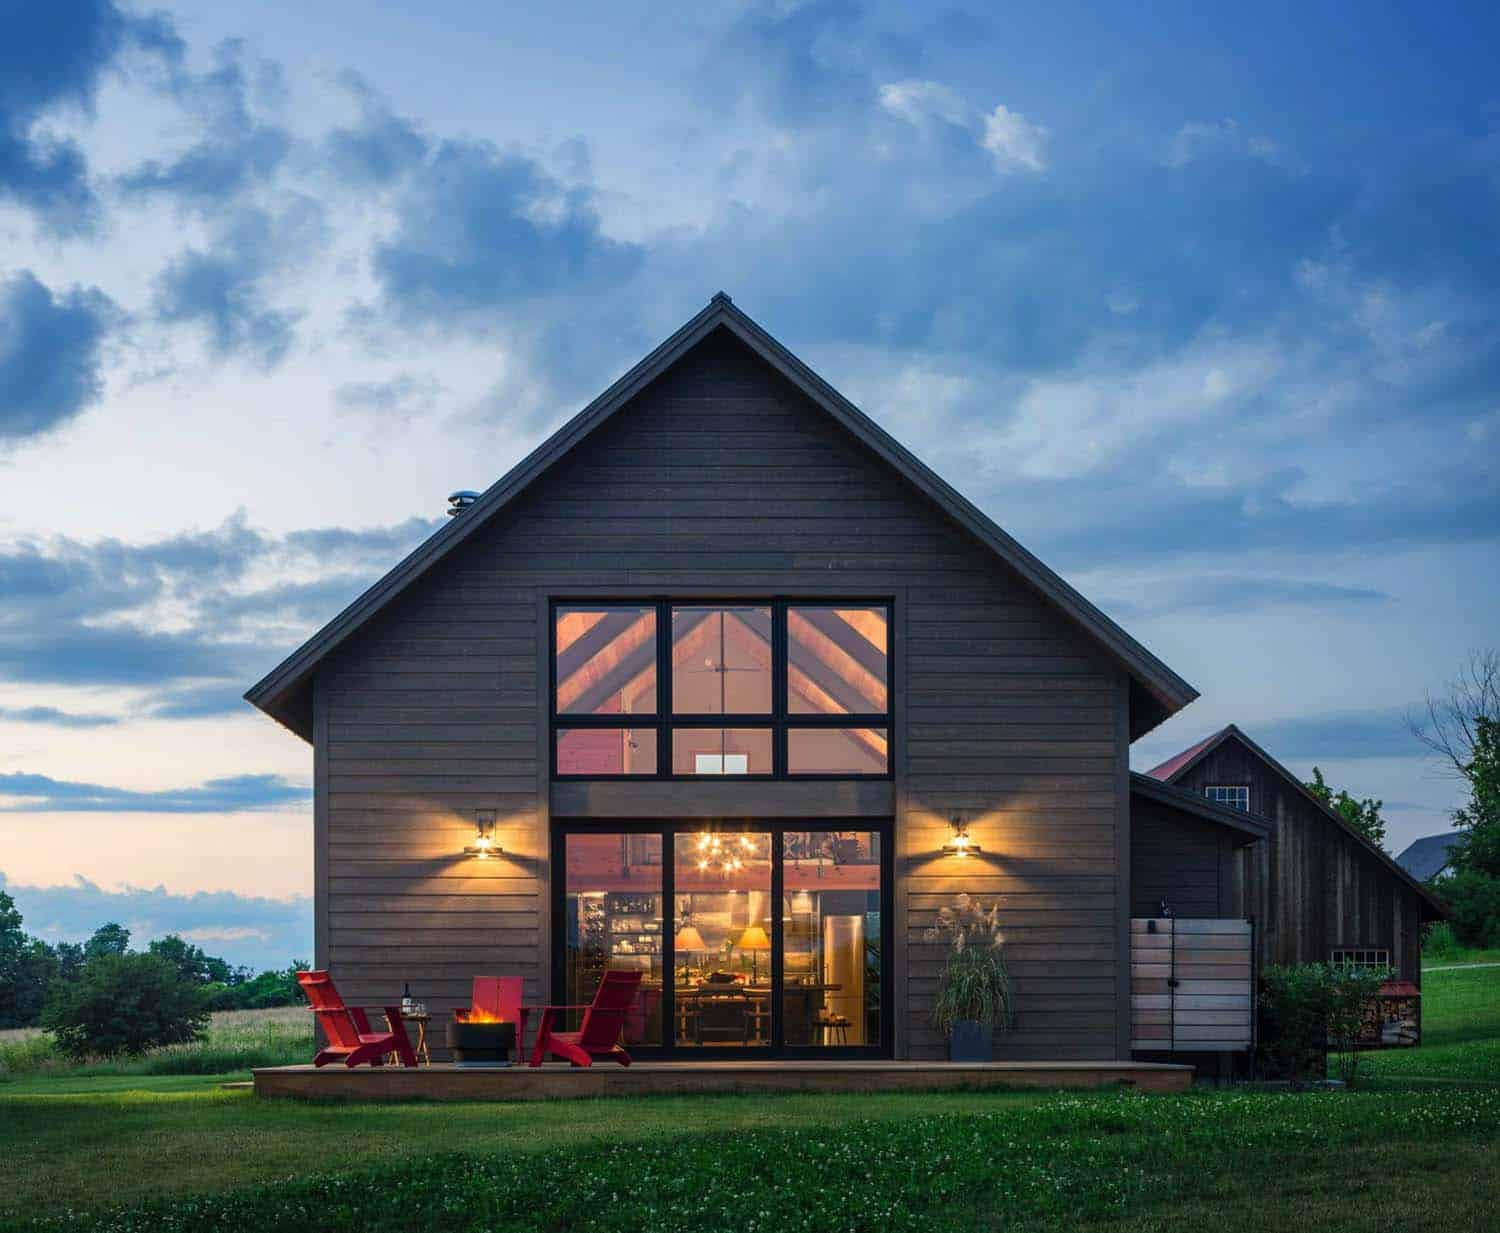 Small and cozy modern barn house getaway in vermont for Barn house layouts